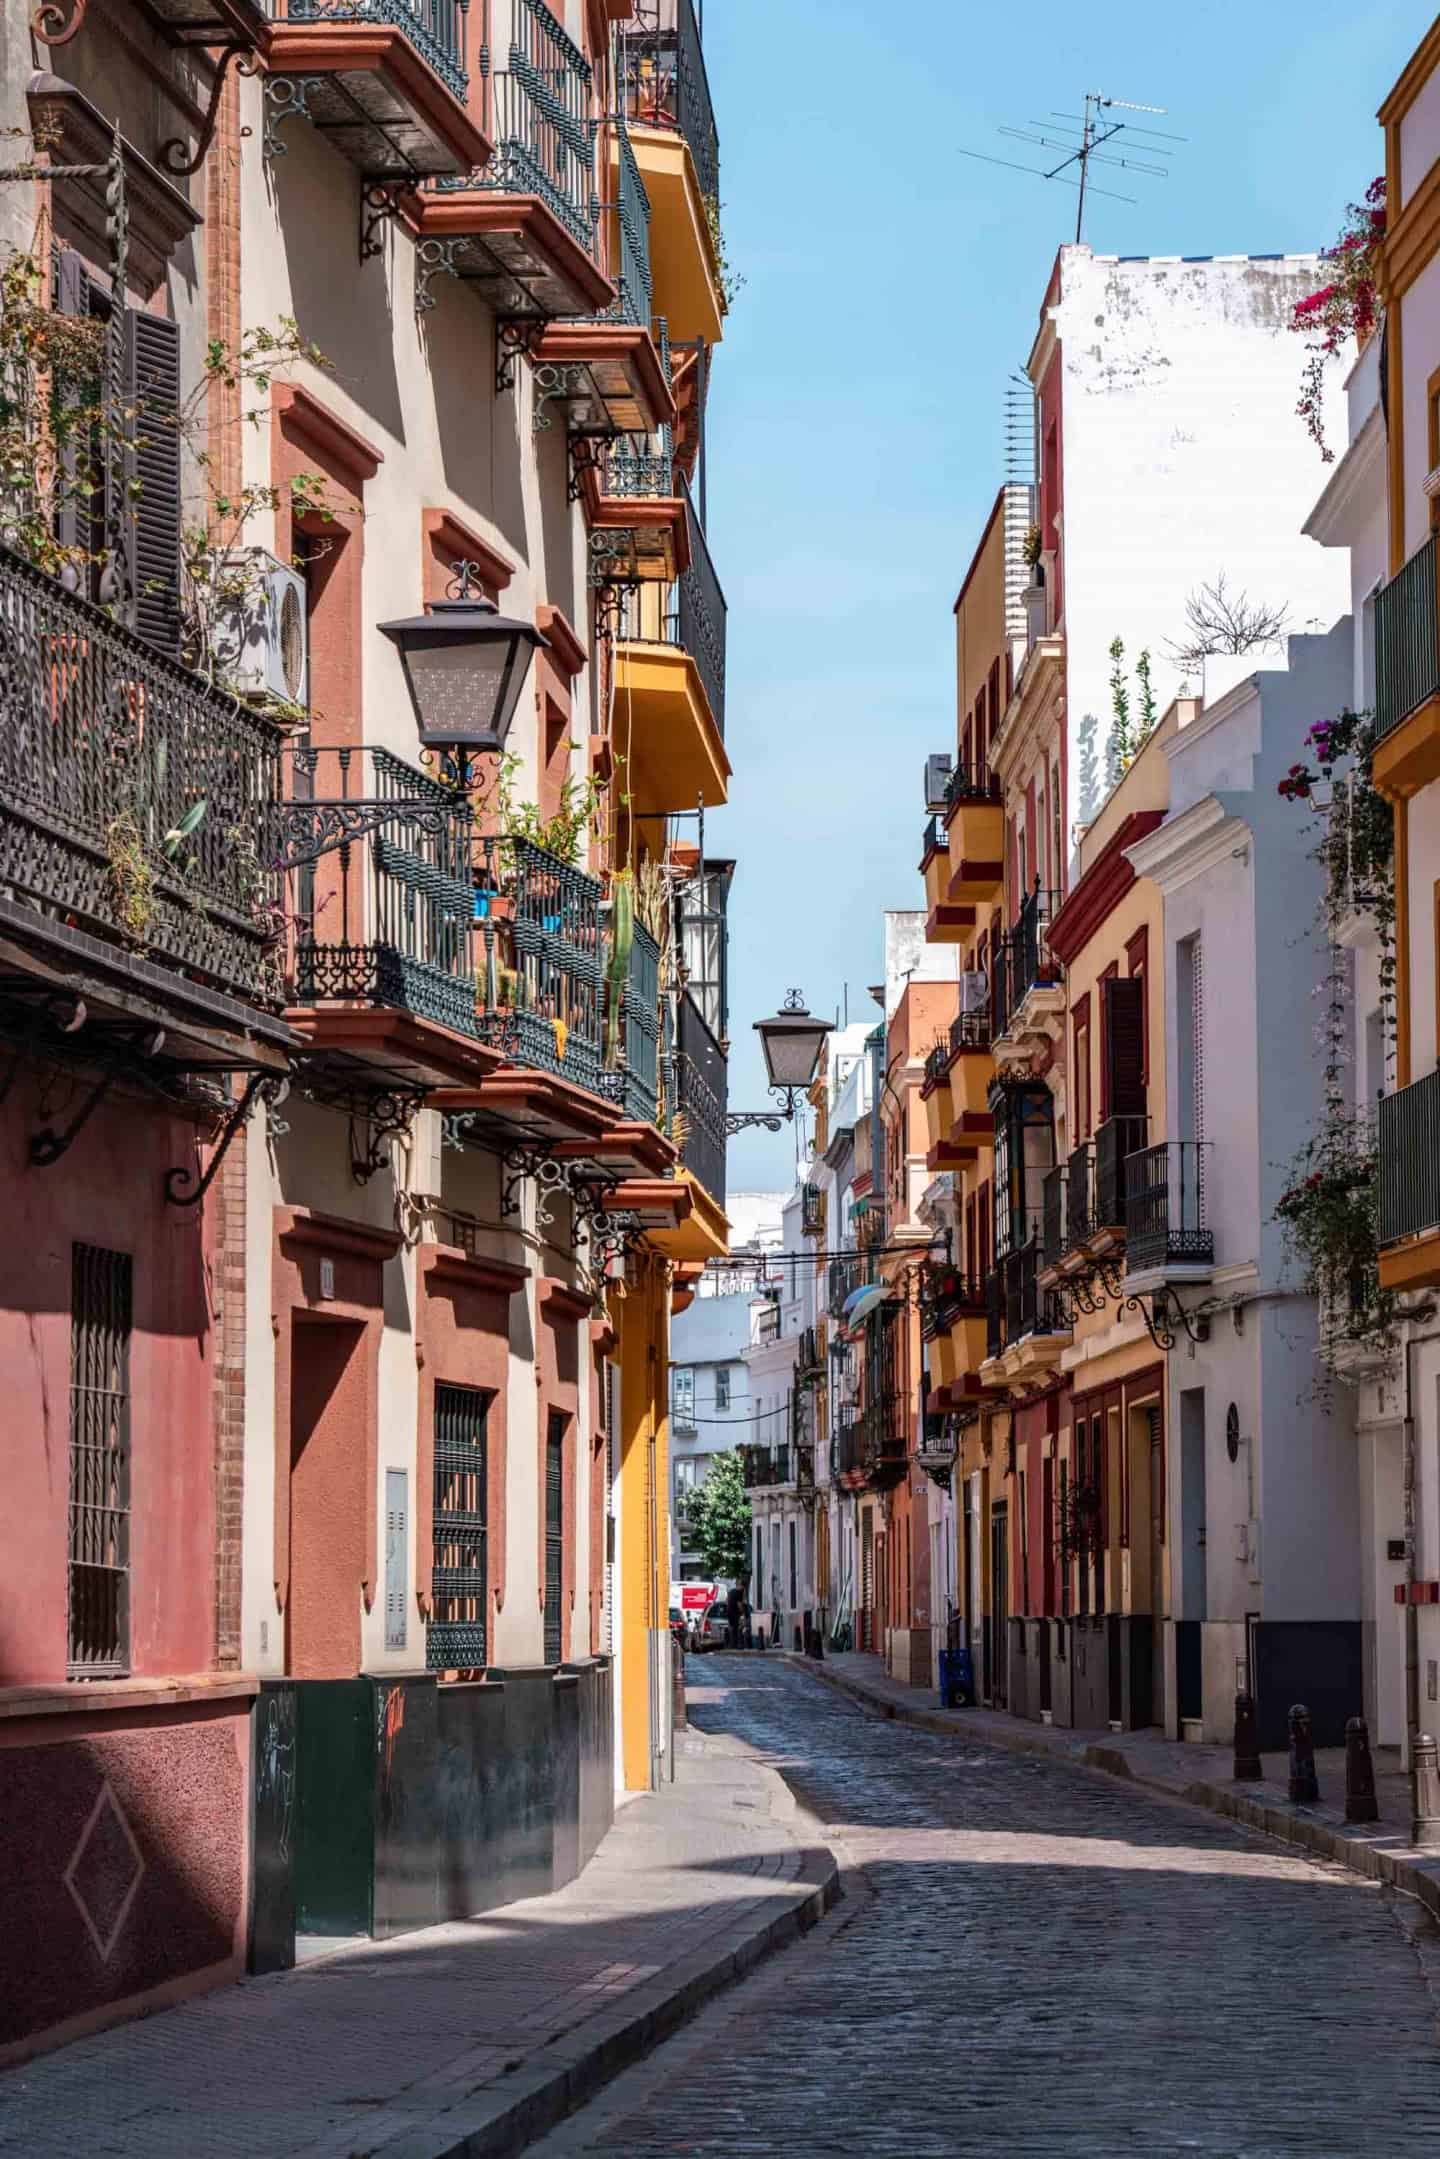 Colourful houses and flower adorned balconies line the cobbled streets of Seville